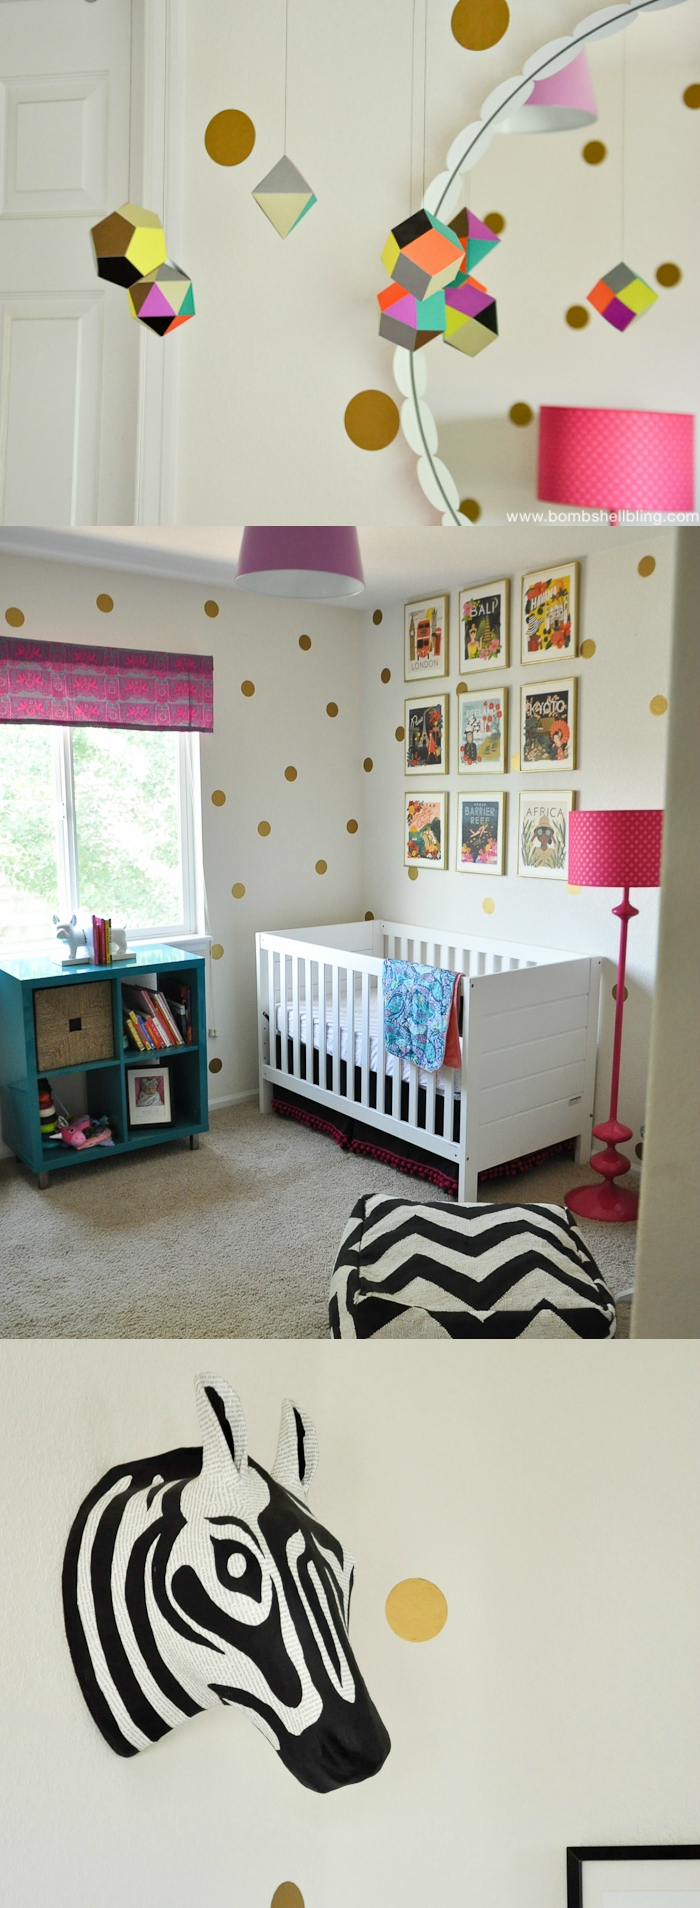 Colorful Modern Nursery